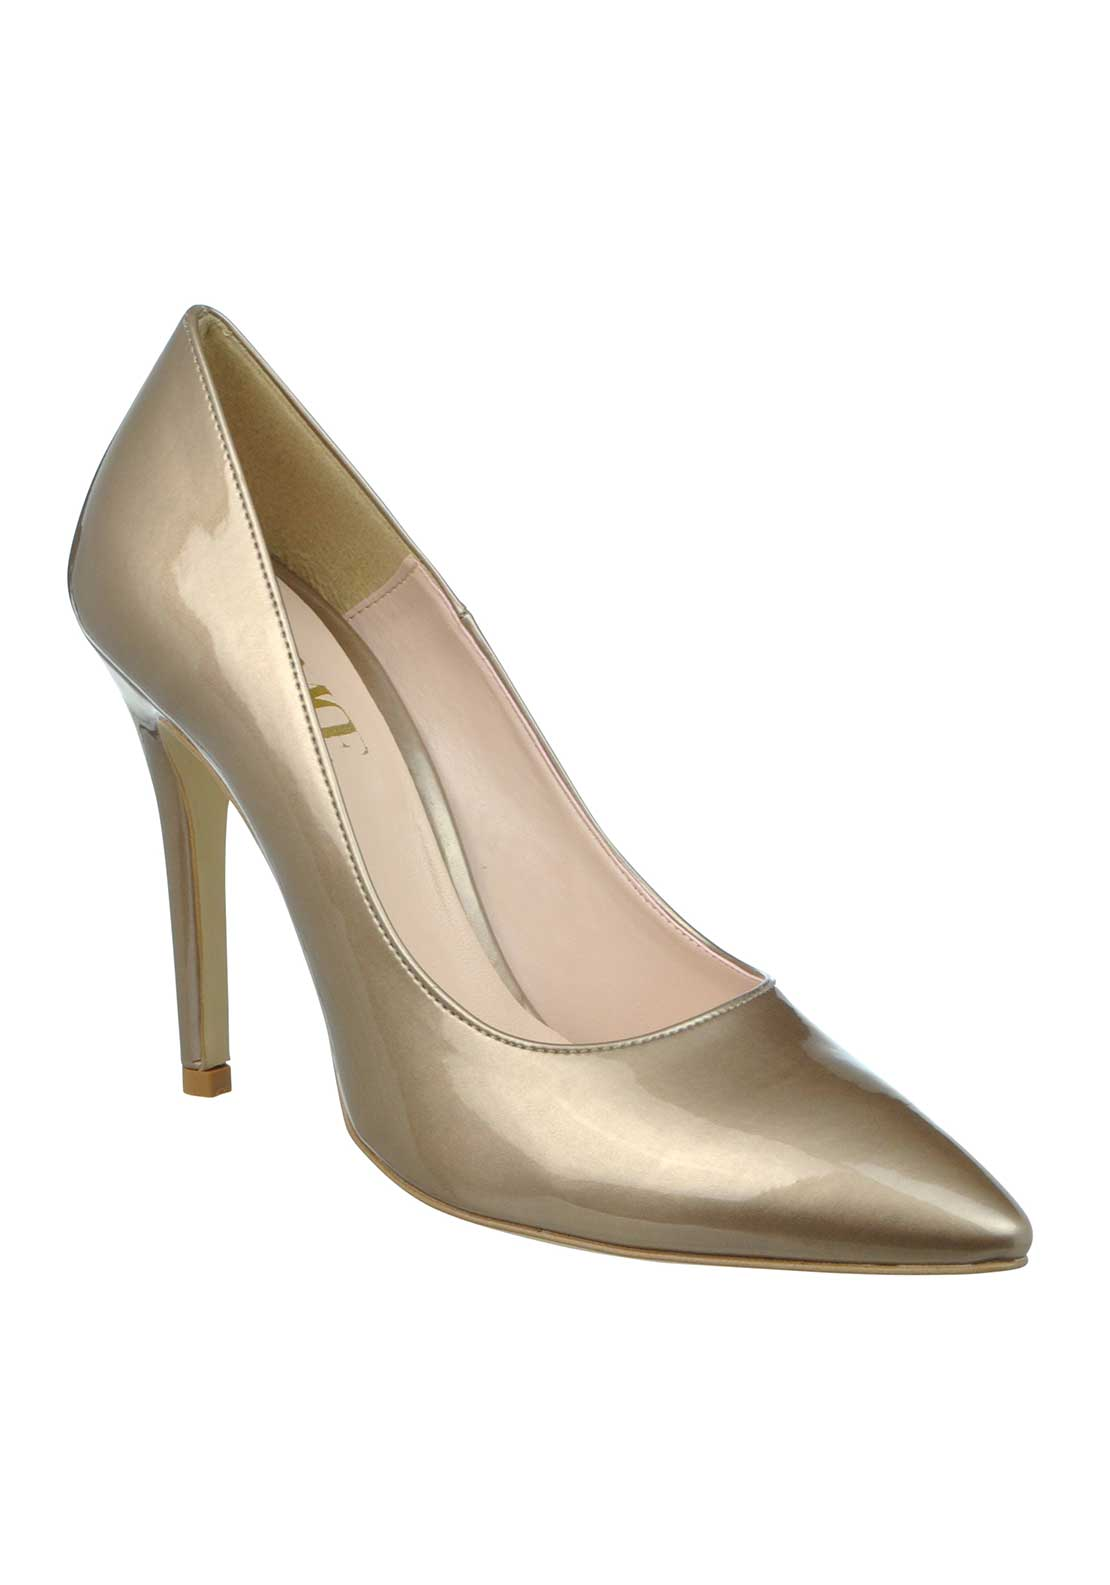 McElhinney's Patent Pointed Toe Heeled Shoes, Taupe